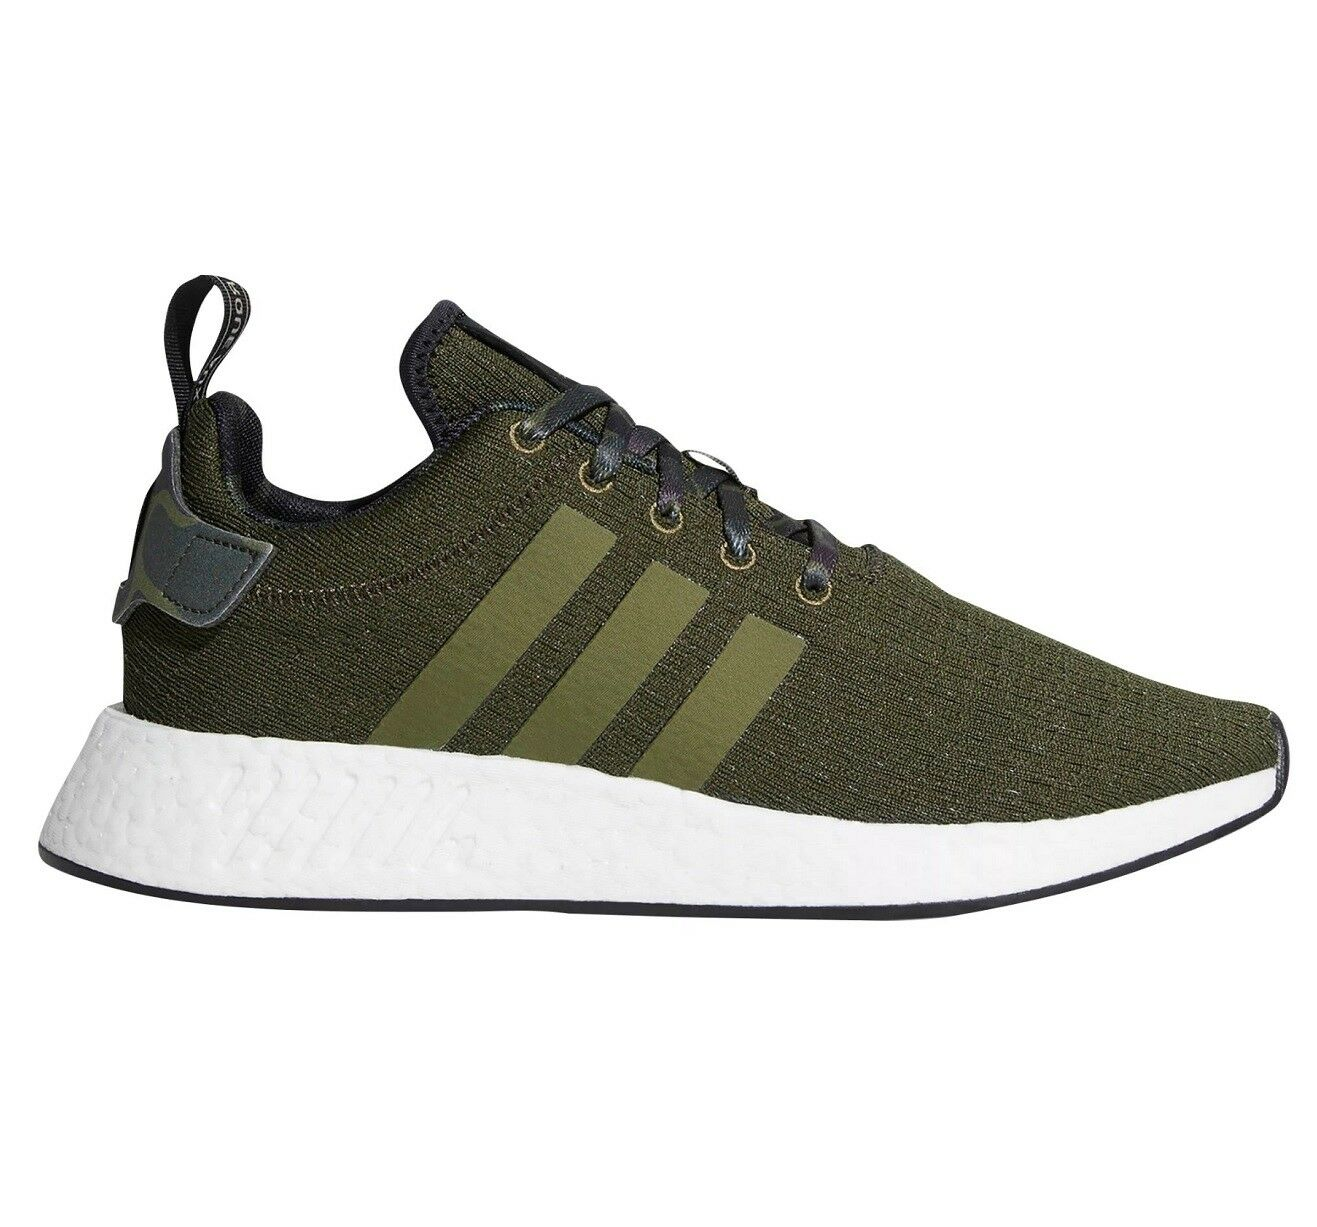 Adidas Adidas Adidas NMD R2 Mens B22630 Olive Cargo Green Boost Knit Athletic shoes Size 10.5 25e17f